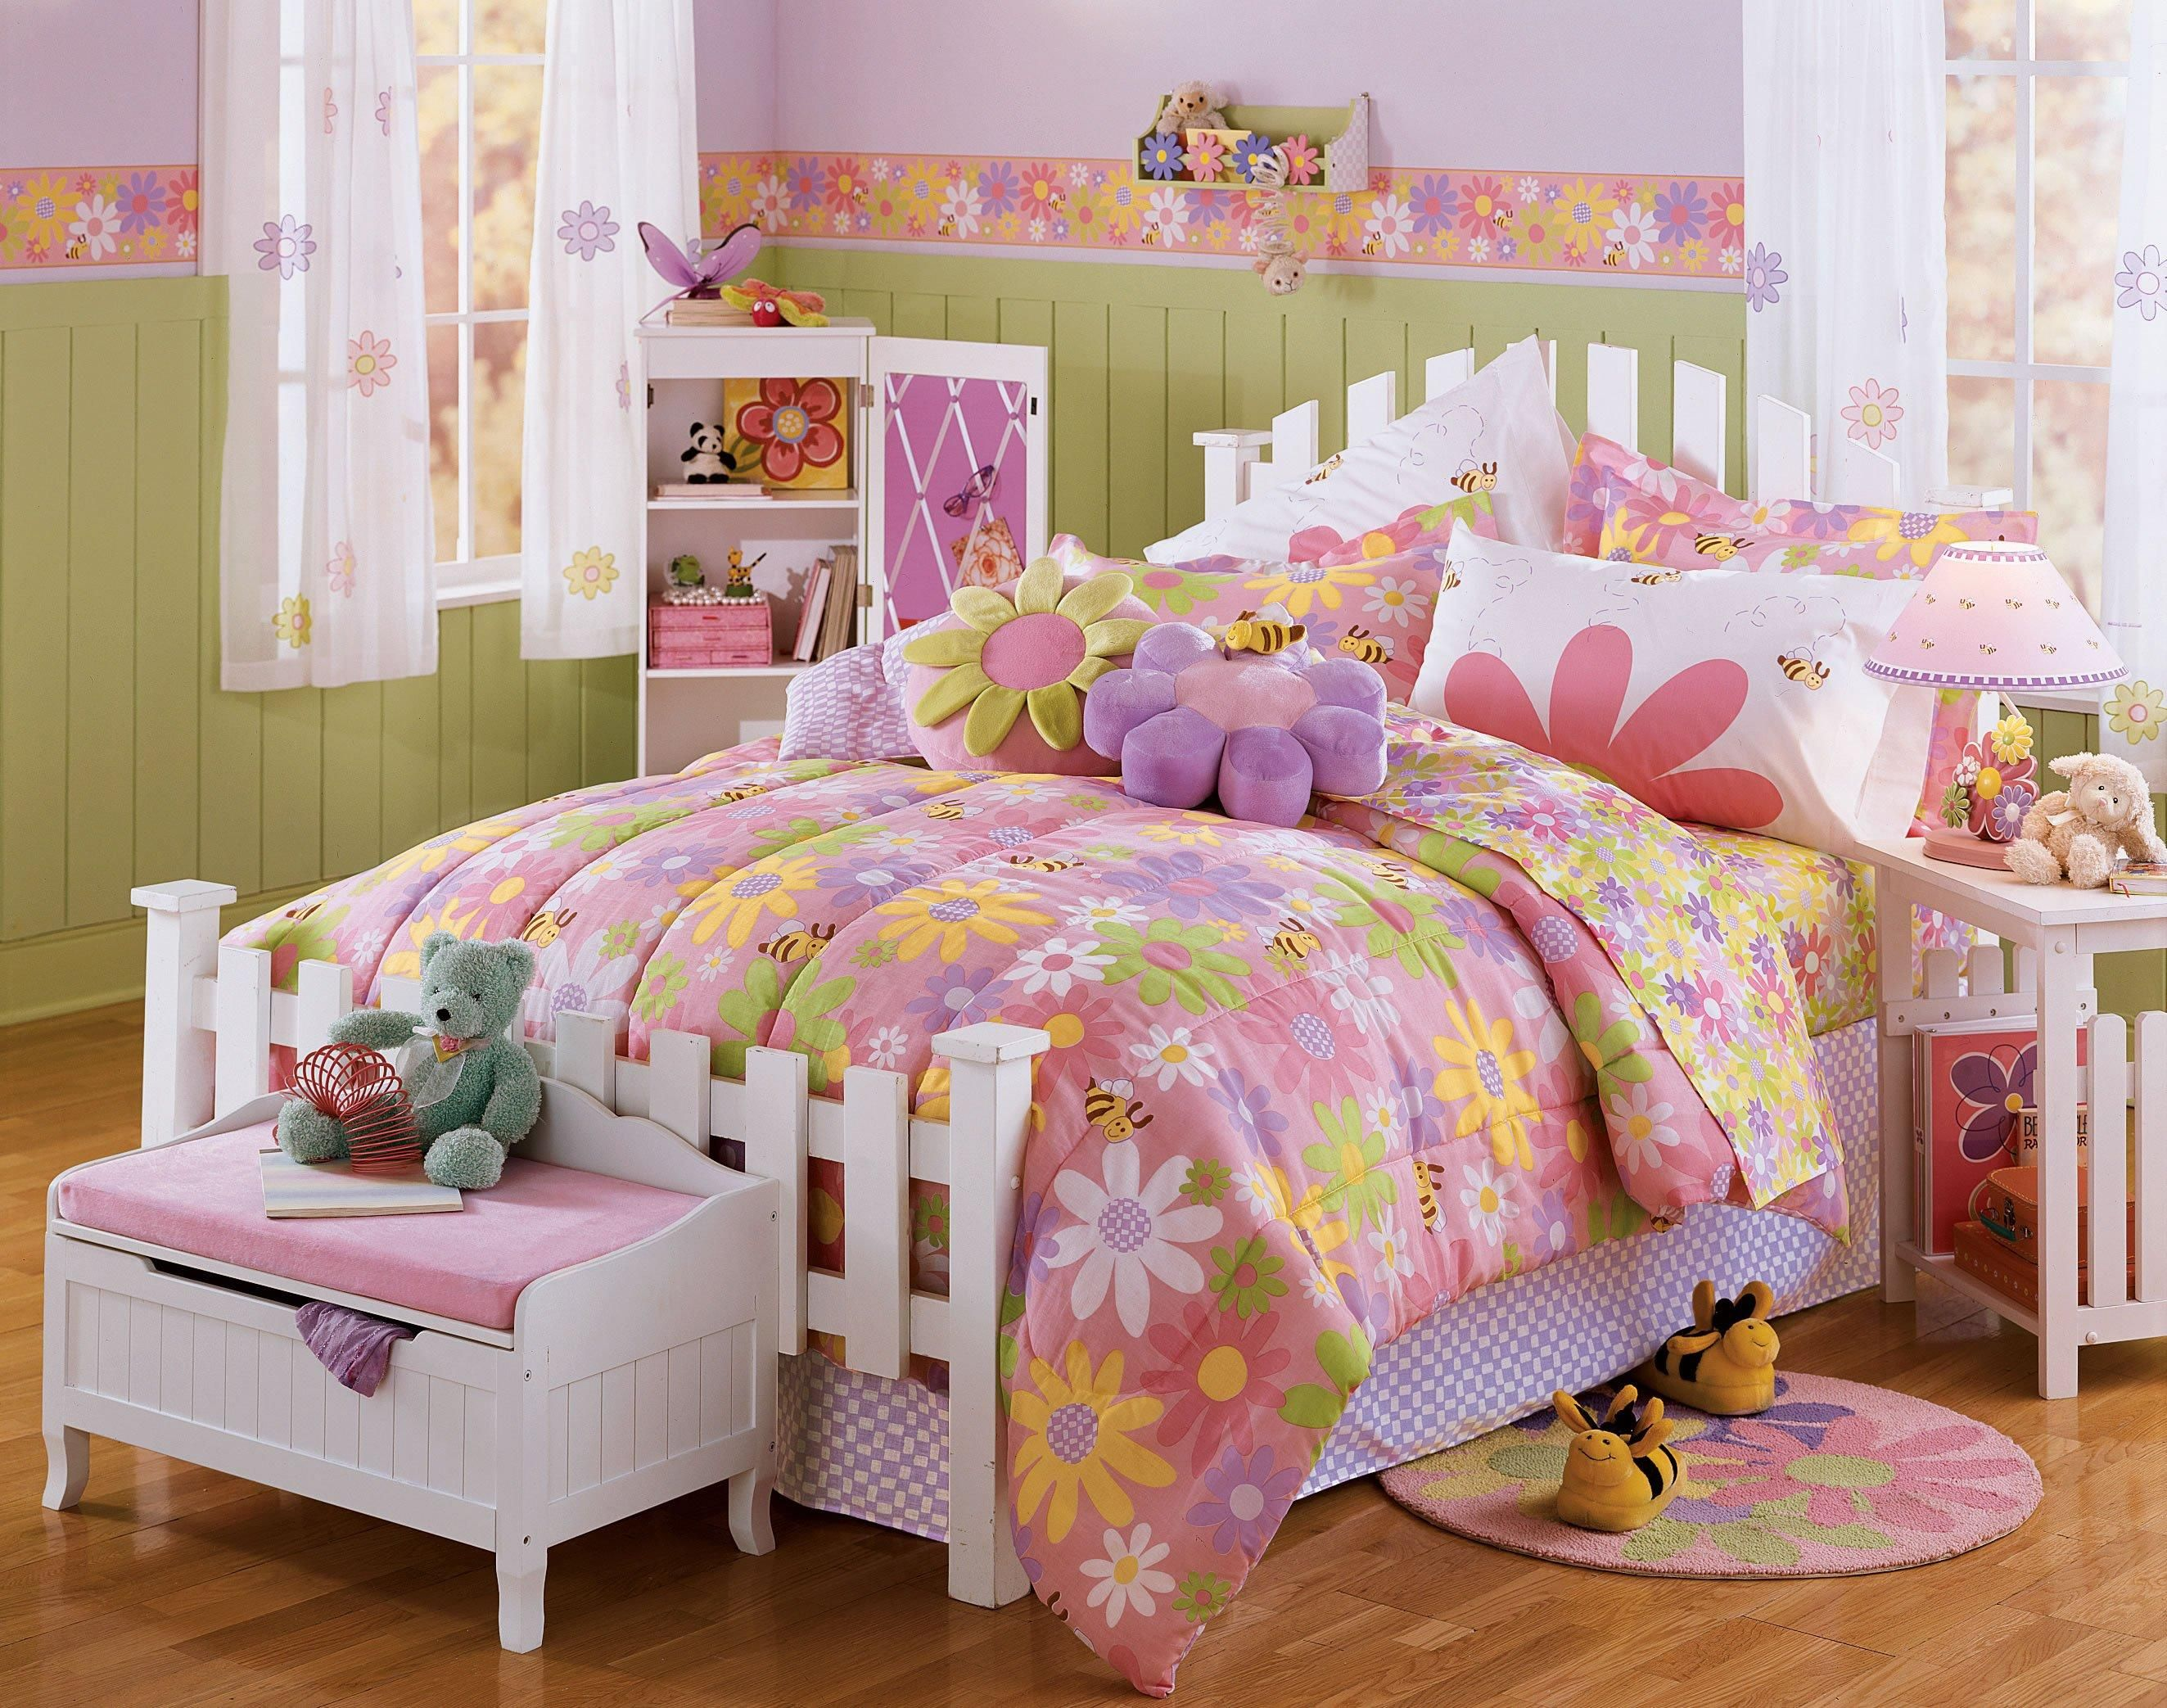 Bedroom designs for teenagers with 2 beds - Design The Island Of Flowery Dream With The Flower Themed Bedroom Ideas For Your Little Girls Awesome Flower Themed Bedroom Ideas For Little Girls Cushion